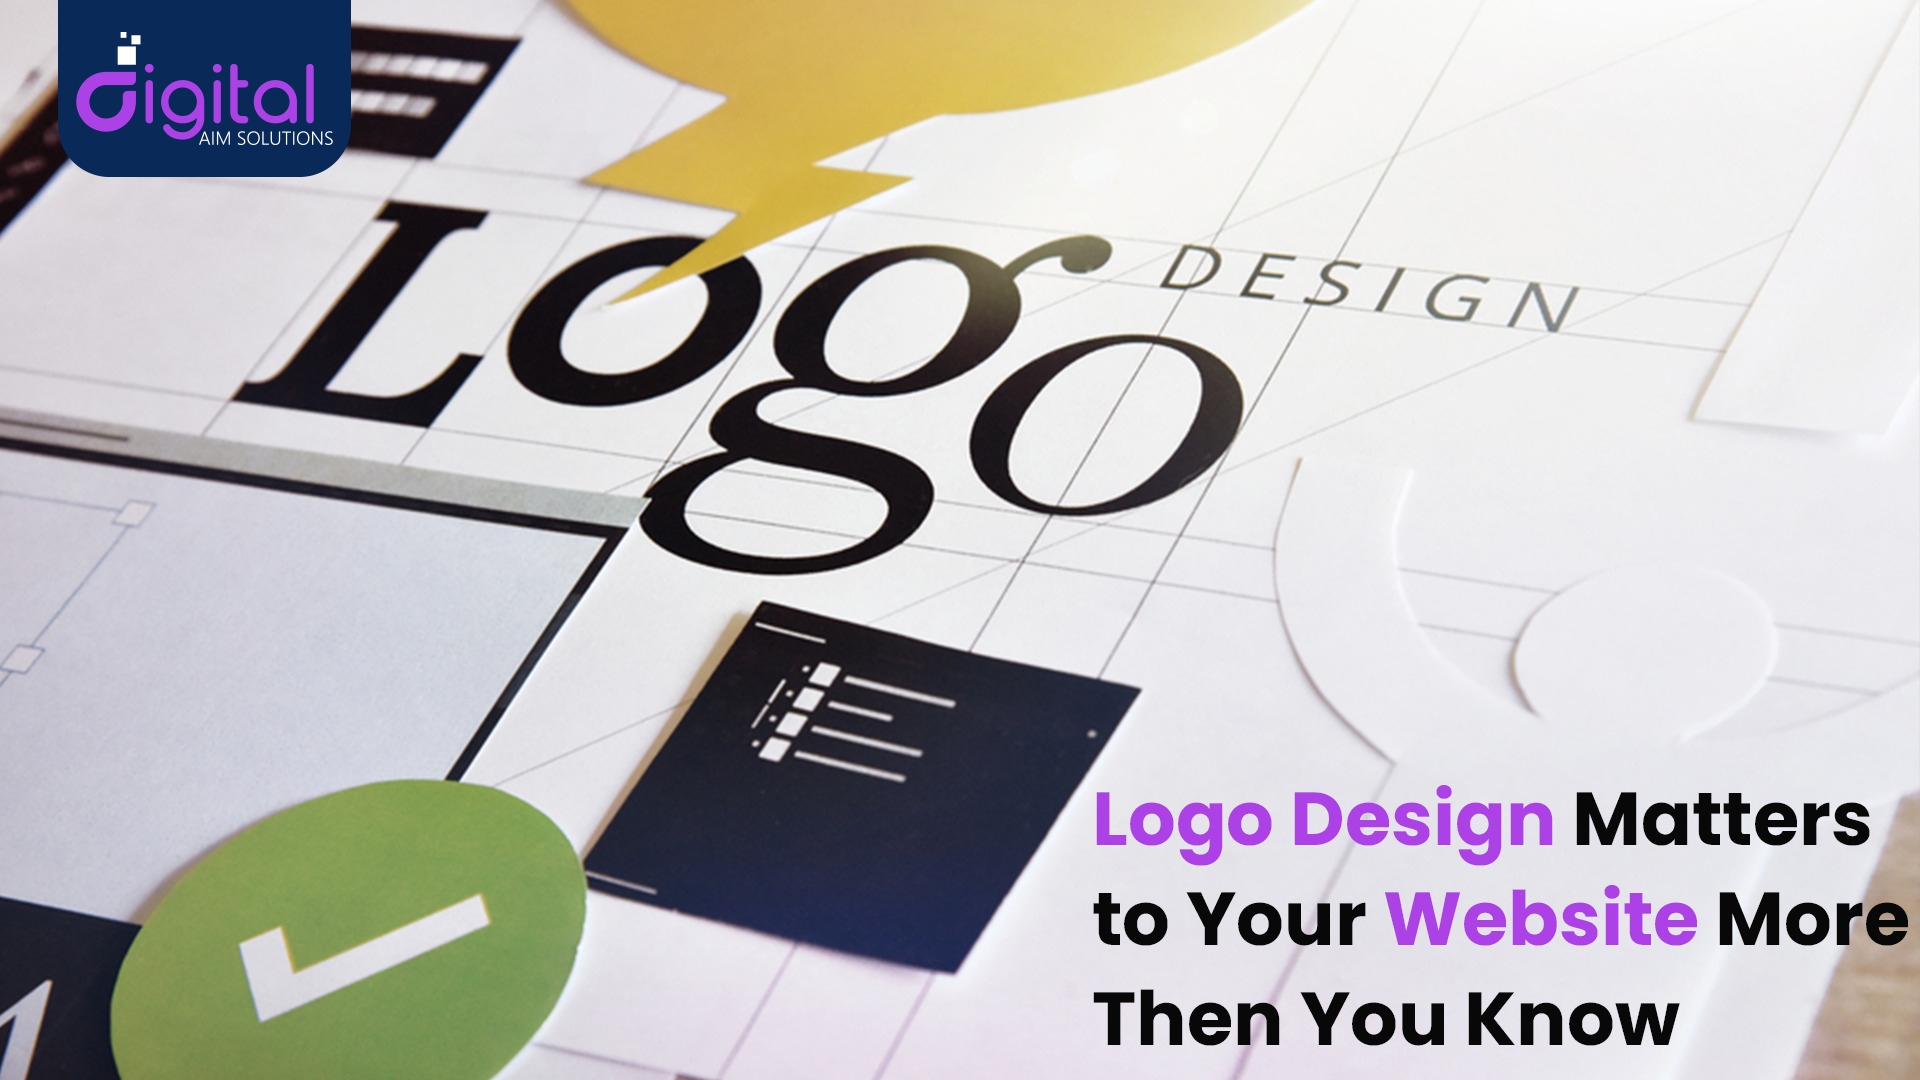 Logo Design matters to your website more than you know